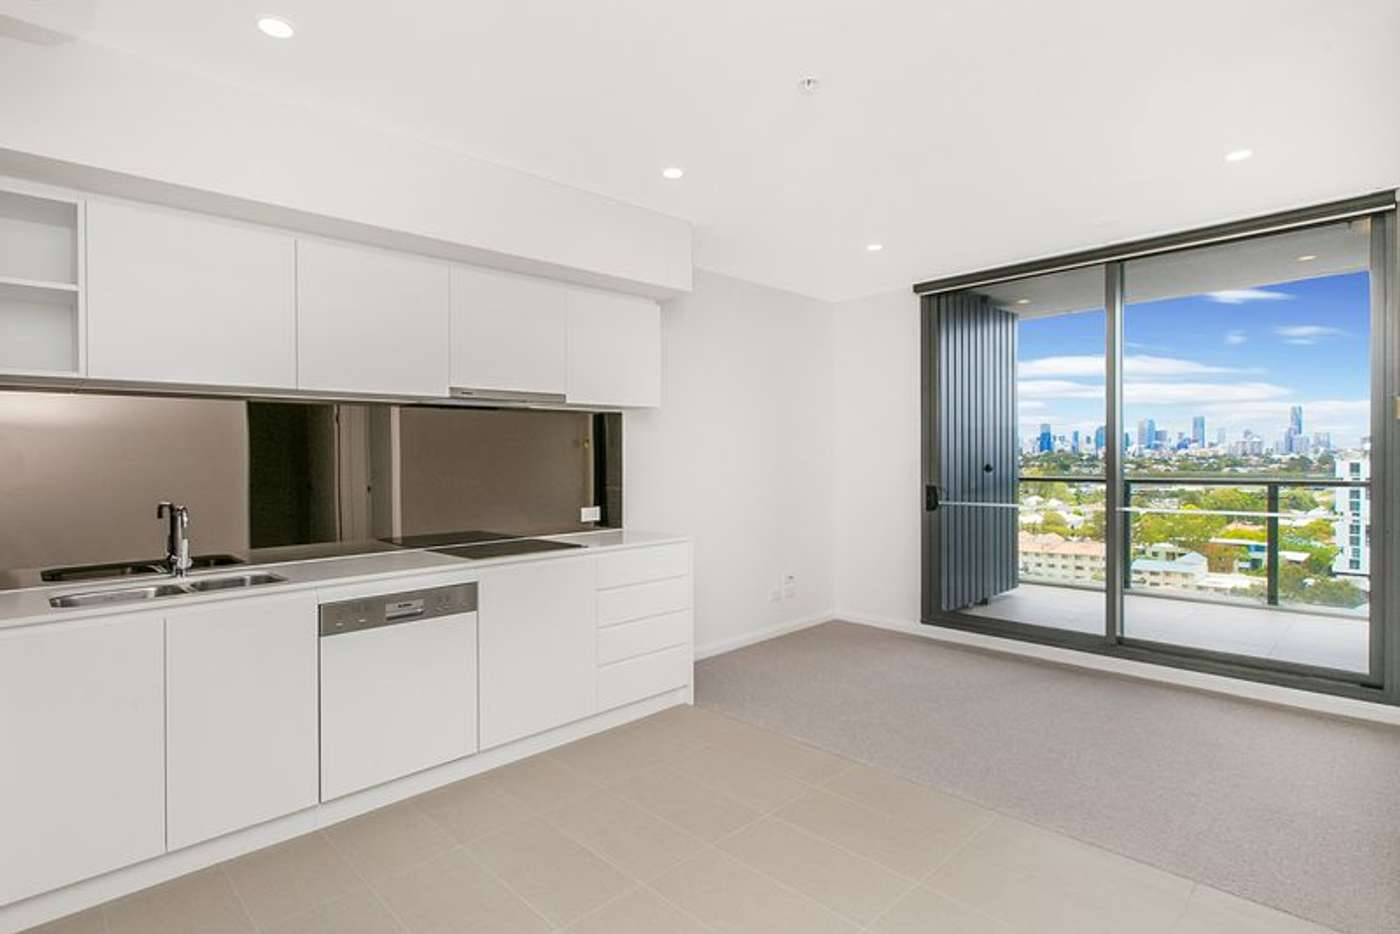 Main view of Homely apartment listing, 31303/300 Old Cleveland Road, Coorparoo QLD 4151